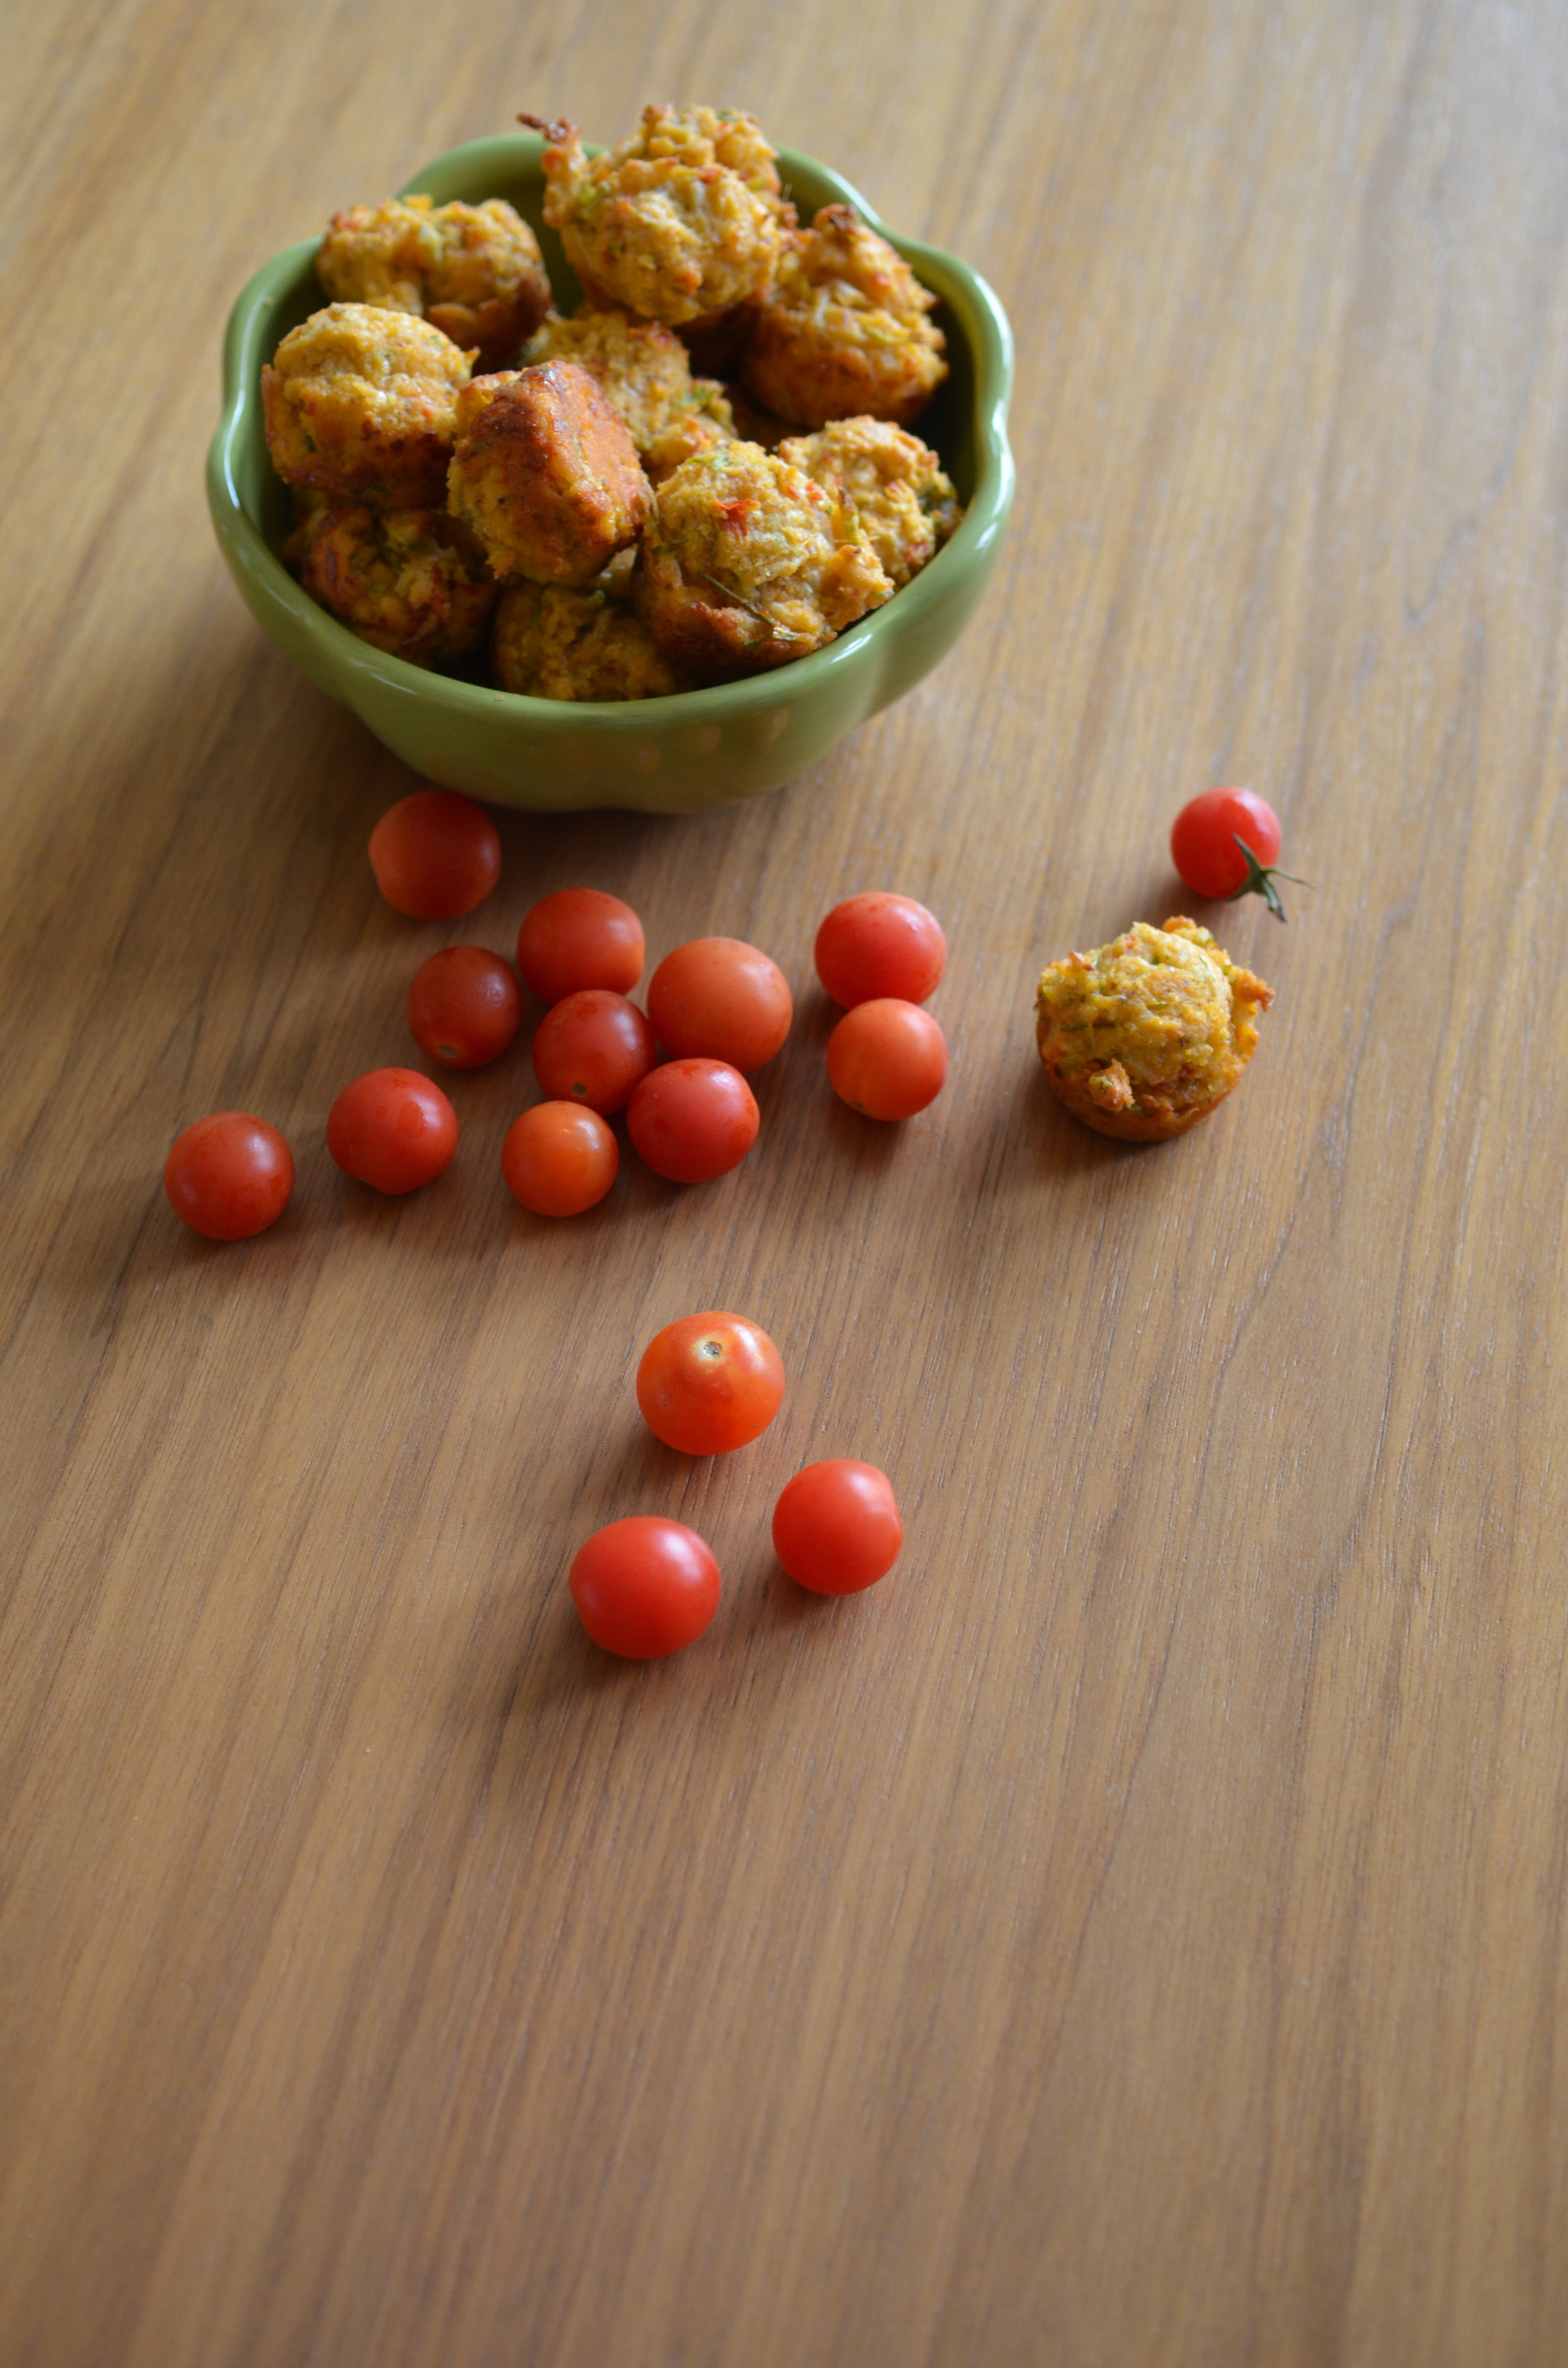 savory mini scones packed with flavor and texture